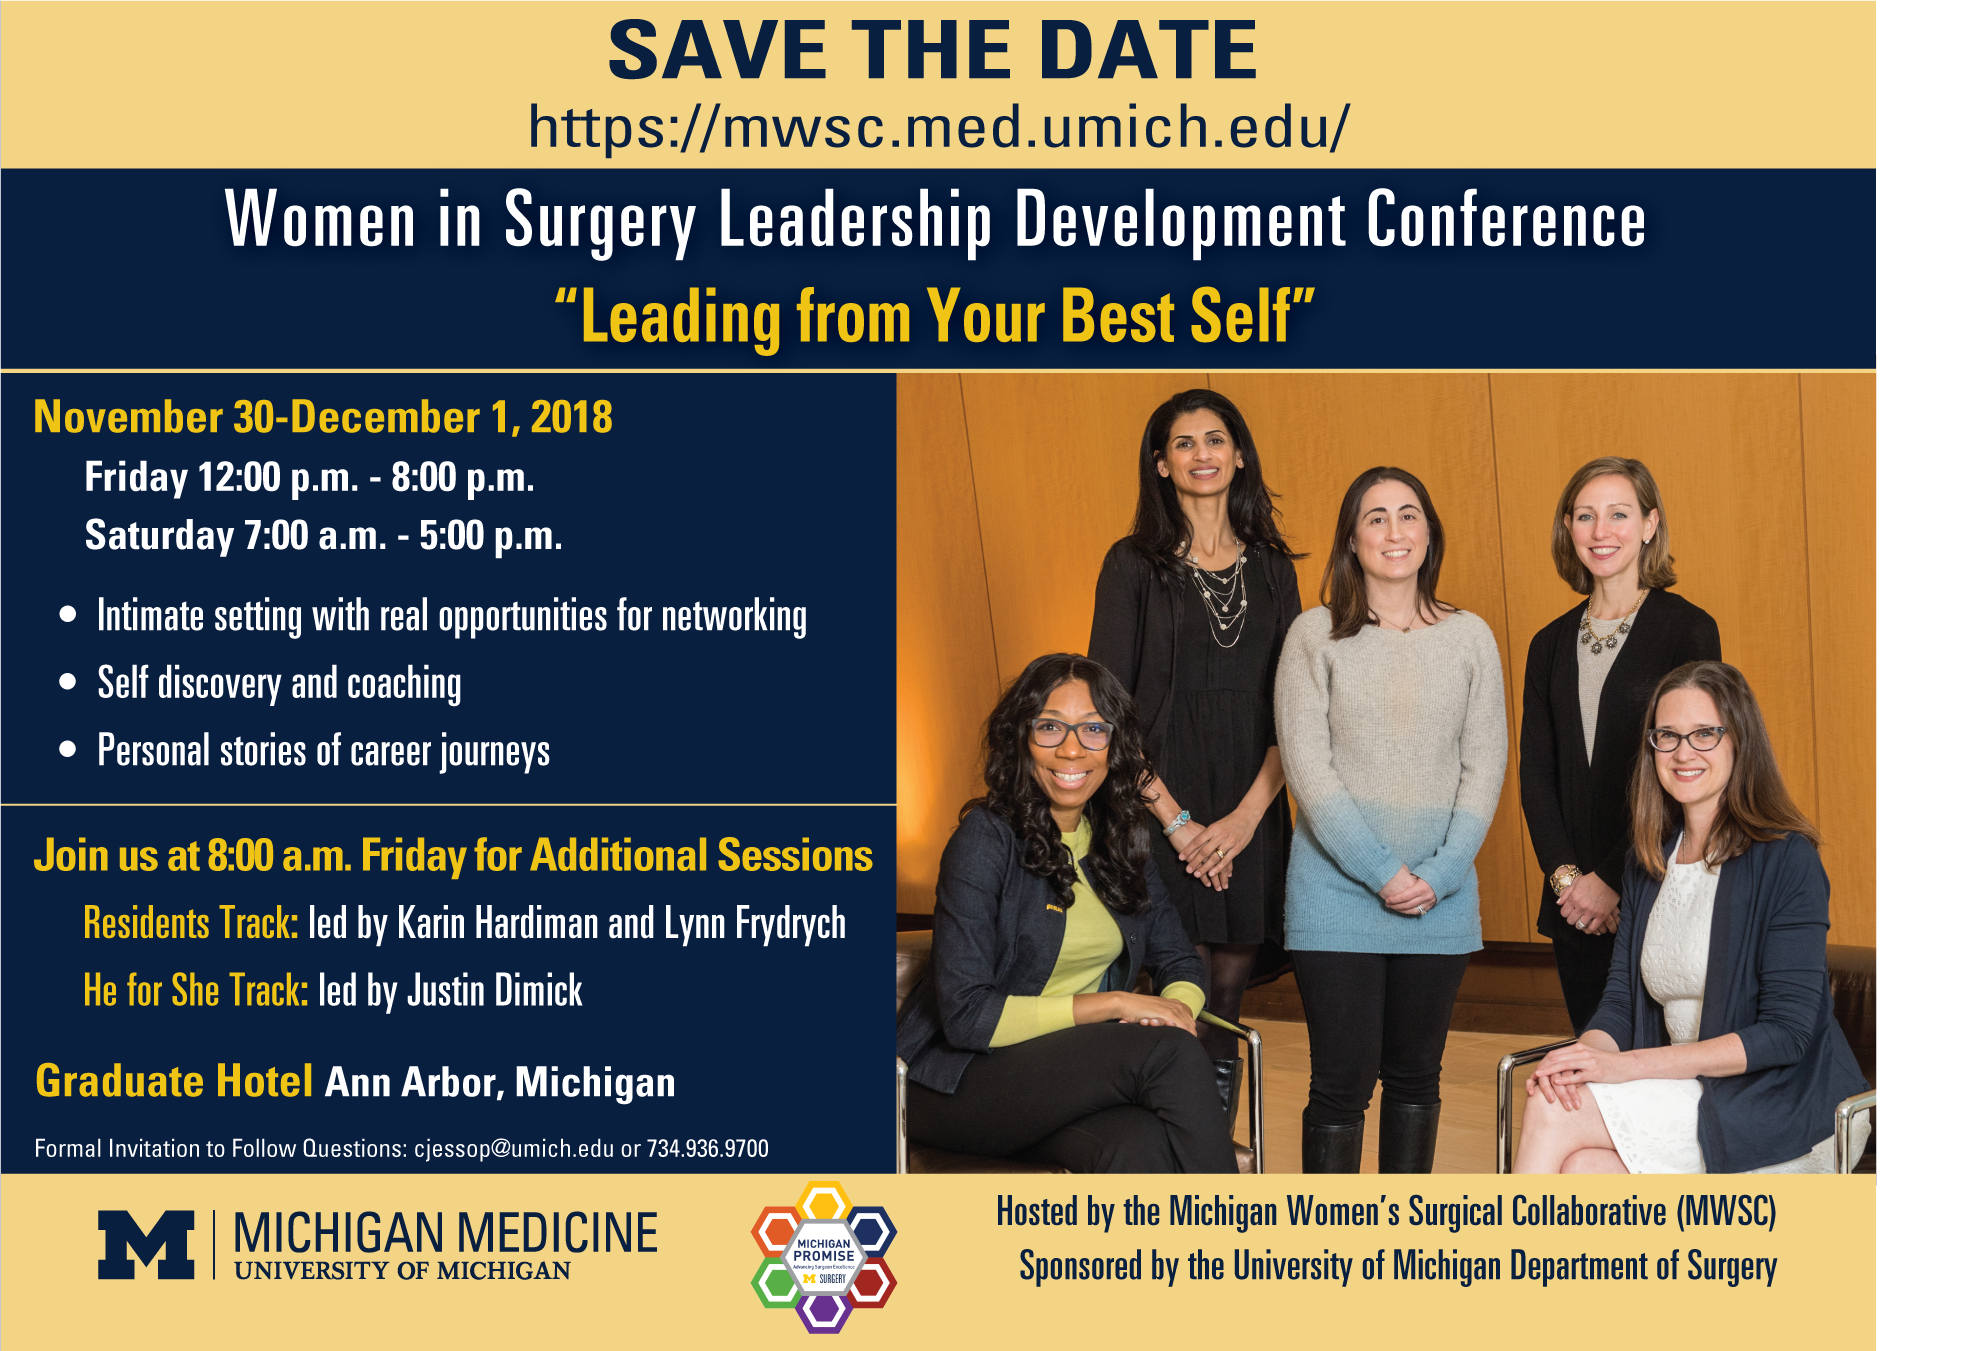 MWSC 2018 Conference Save the Date